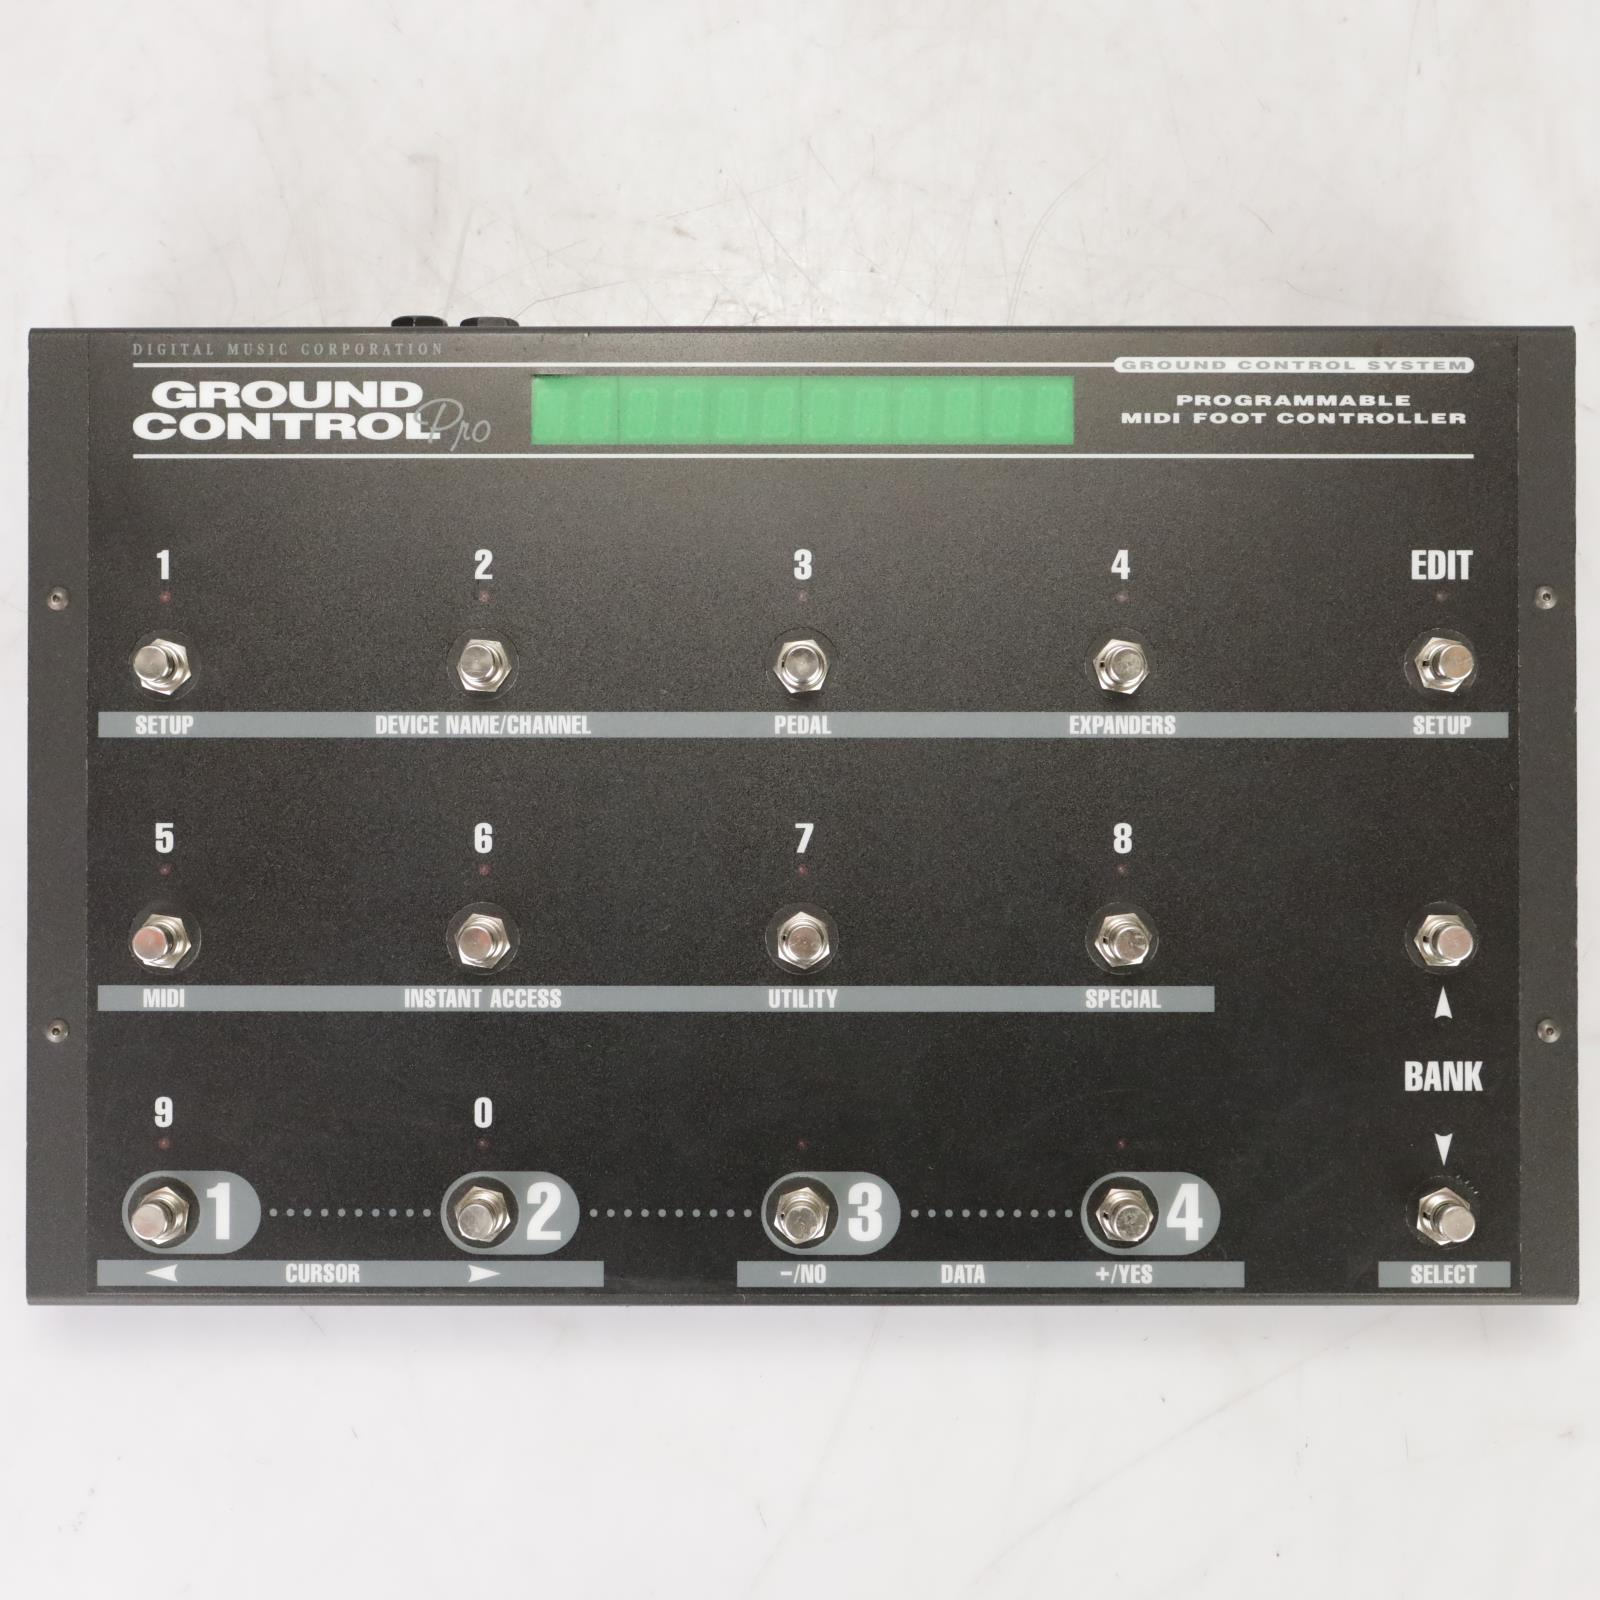 Digital Music Corporation Voodoo Lab Ground Control Pro Owned by Garbage #38677